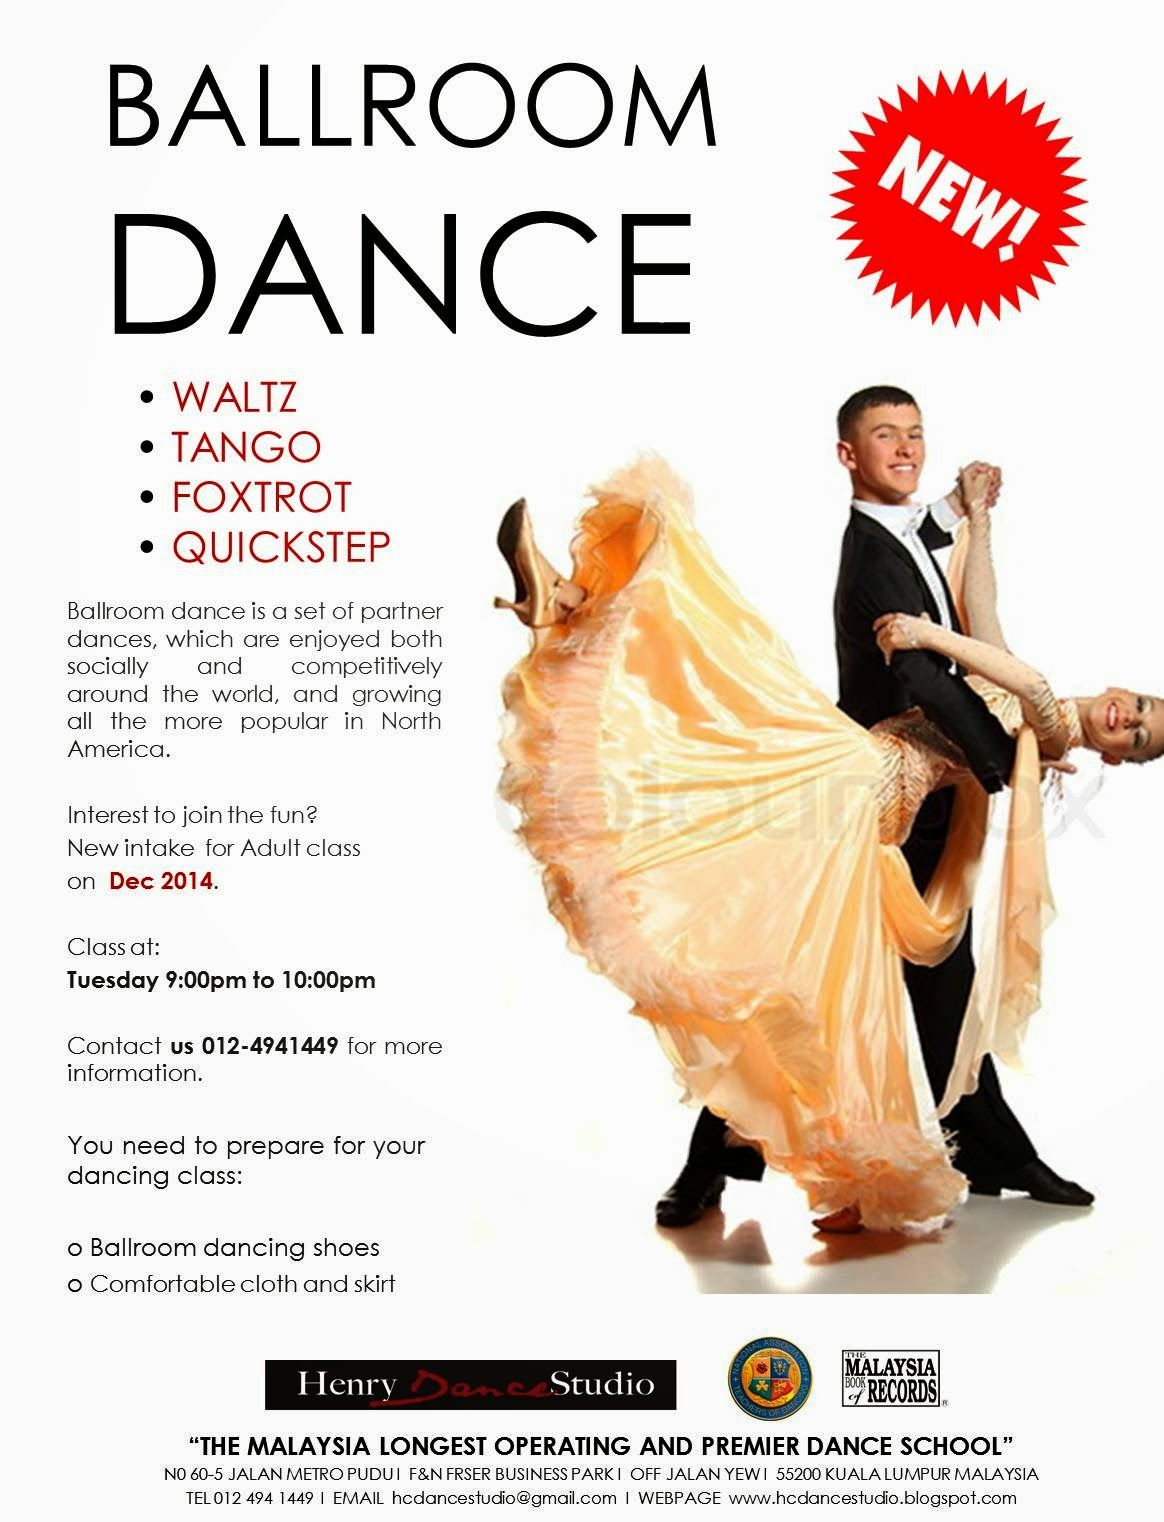 ballroom dance flyer plus more flyer samples ダンススクール